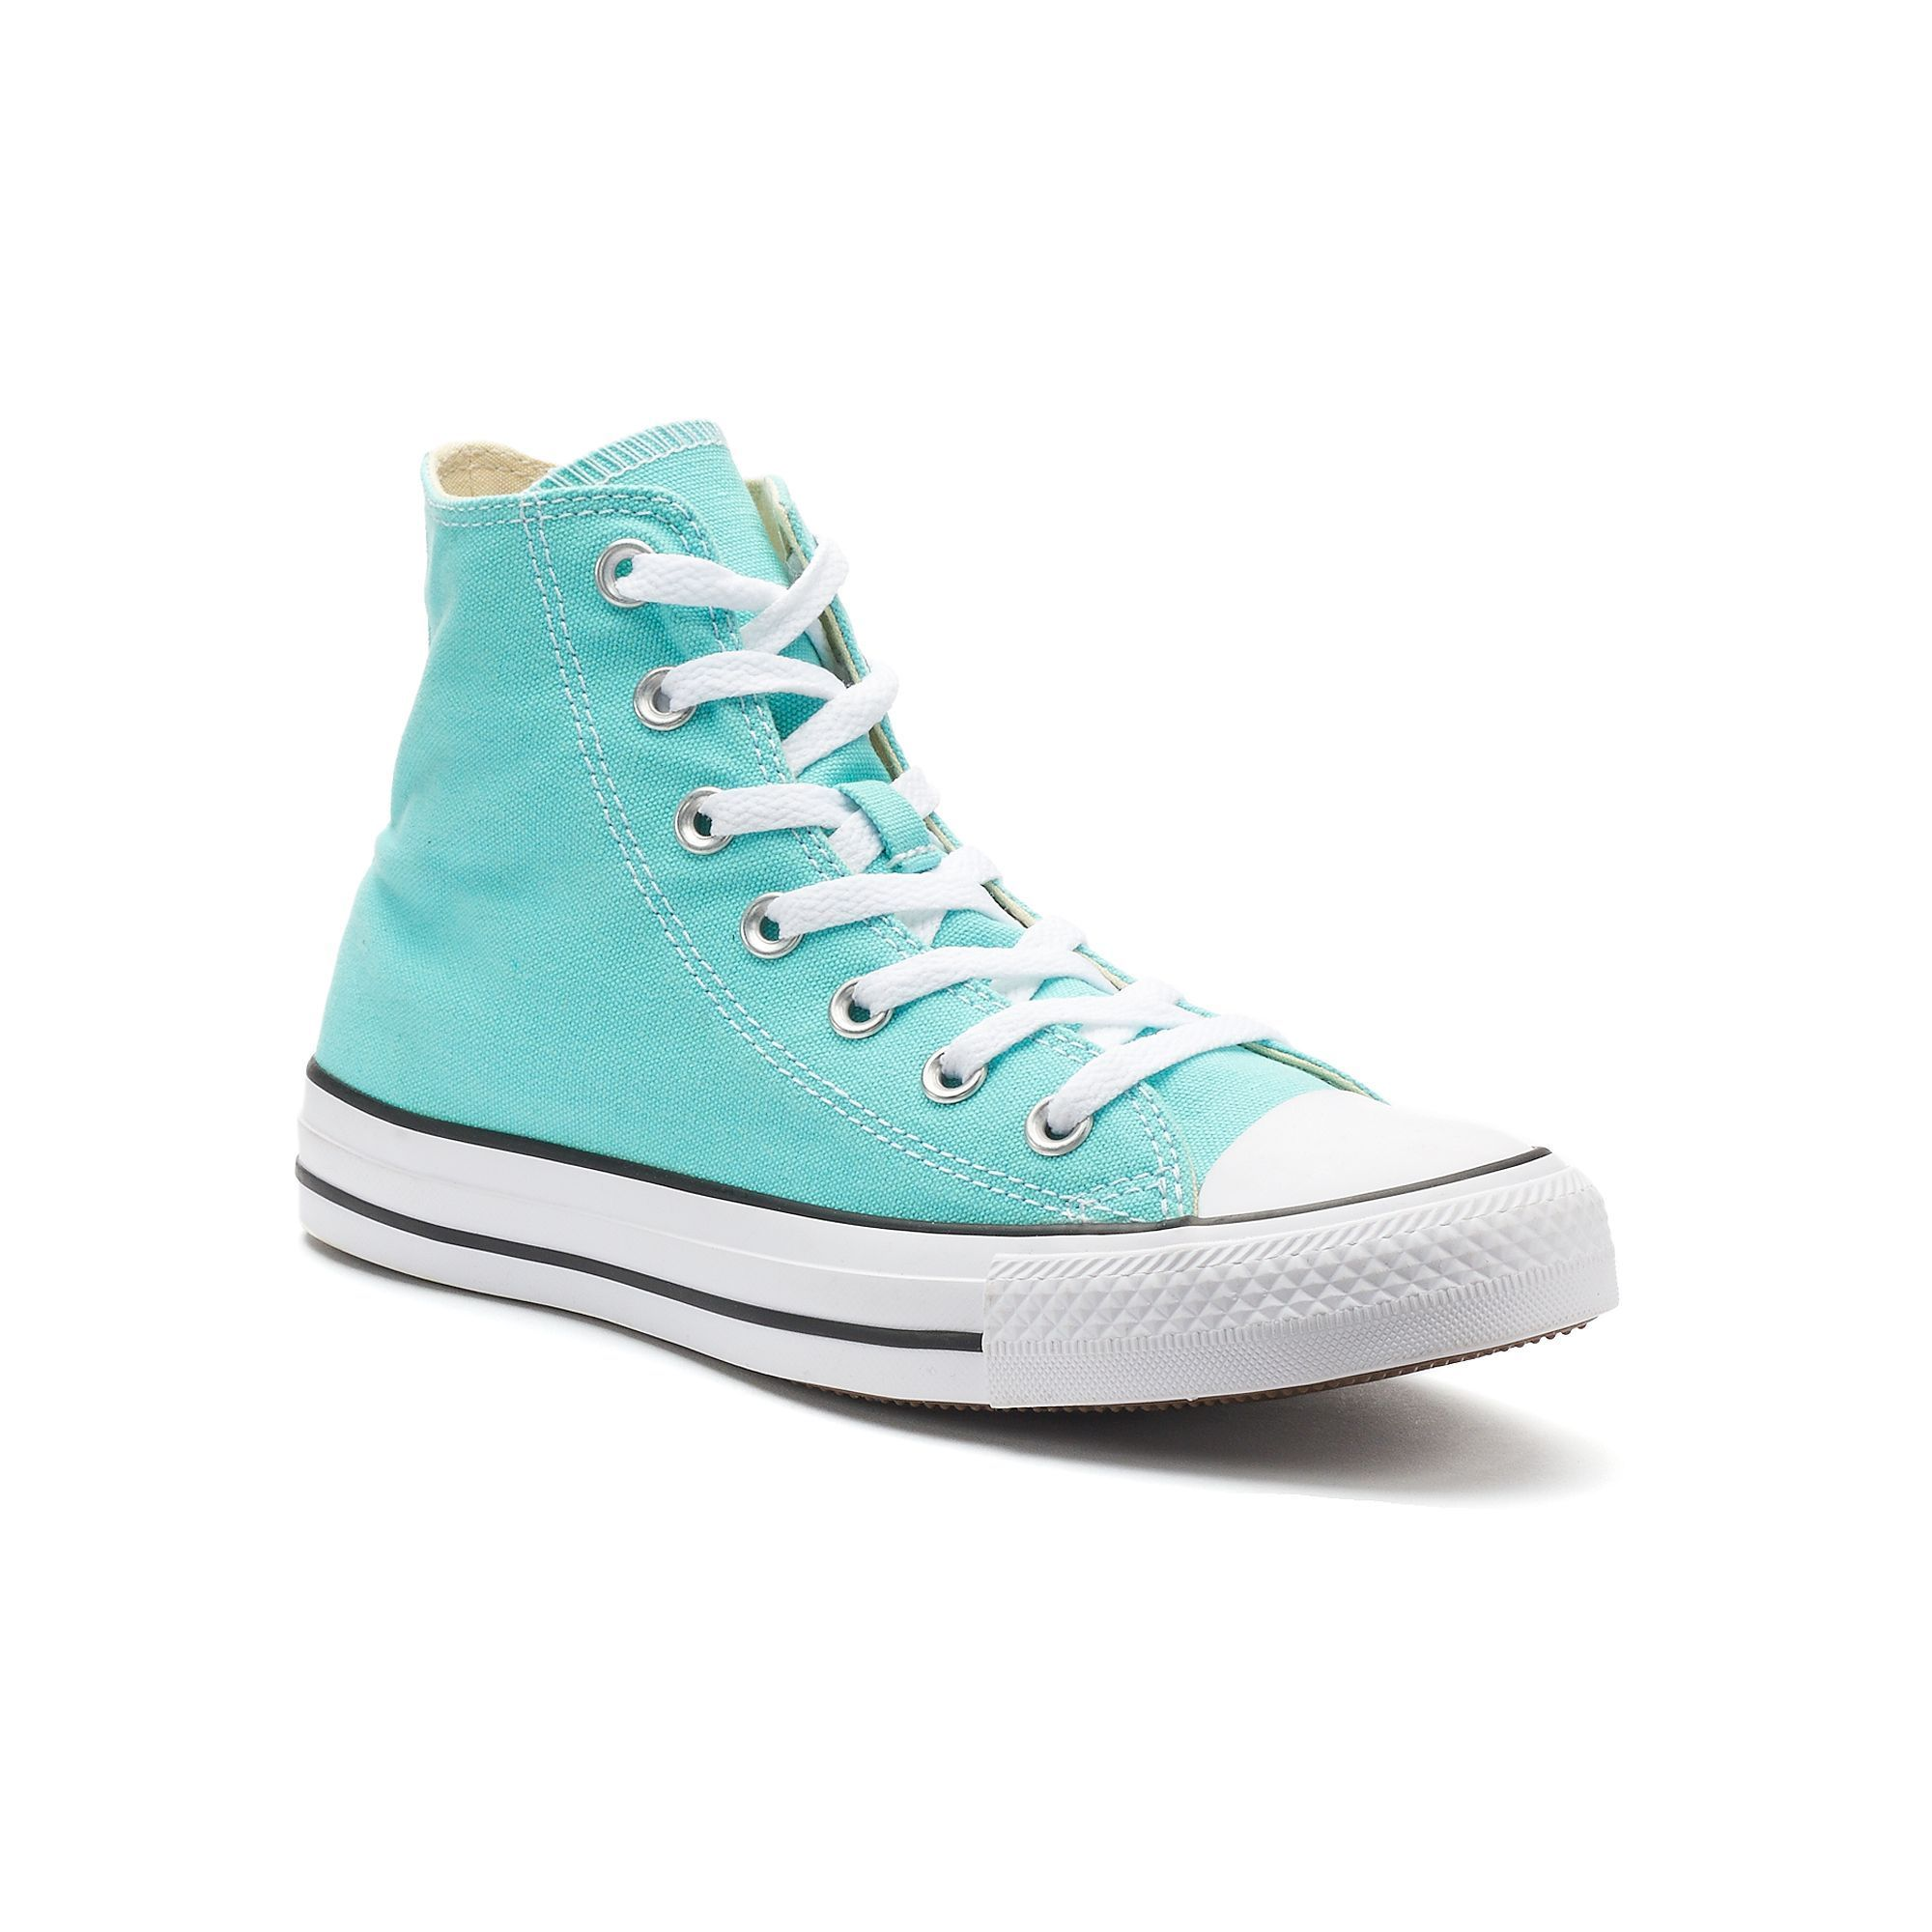 a0c97c2297c3 Adult Converse All Star Chuck Taylor High-Top Sneakers in 2019 ...